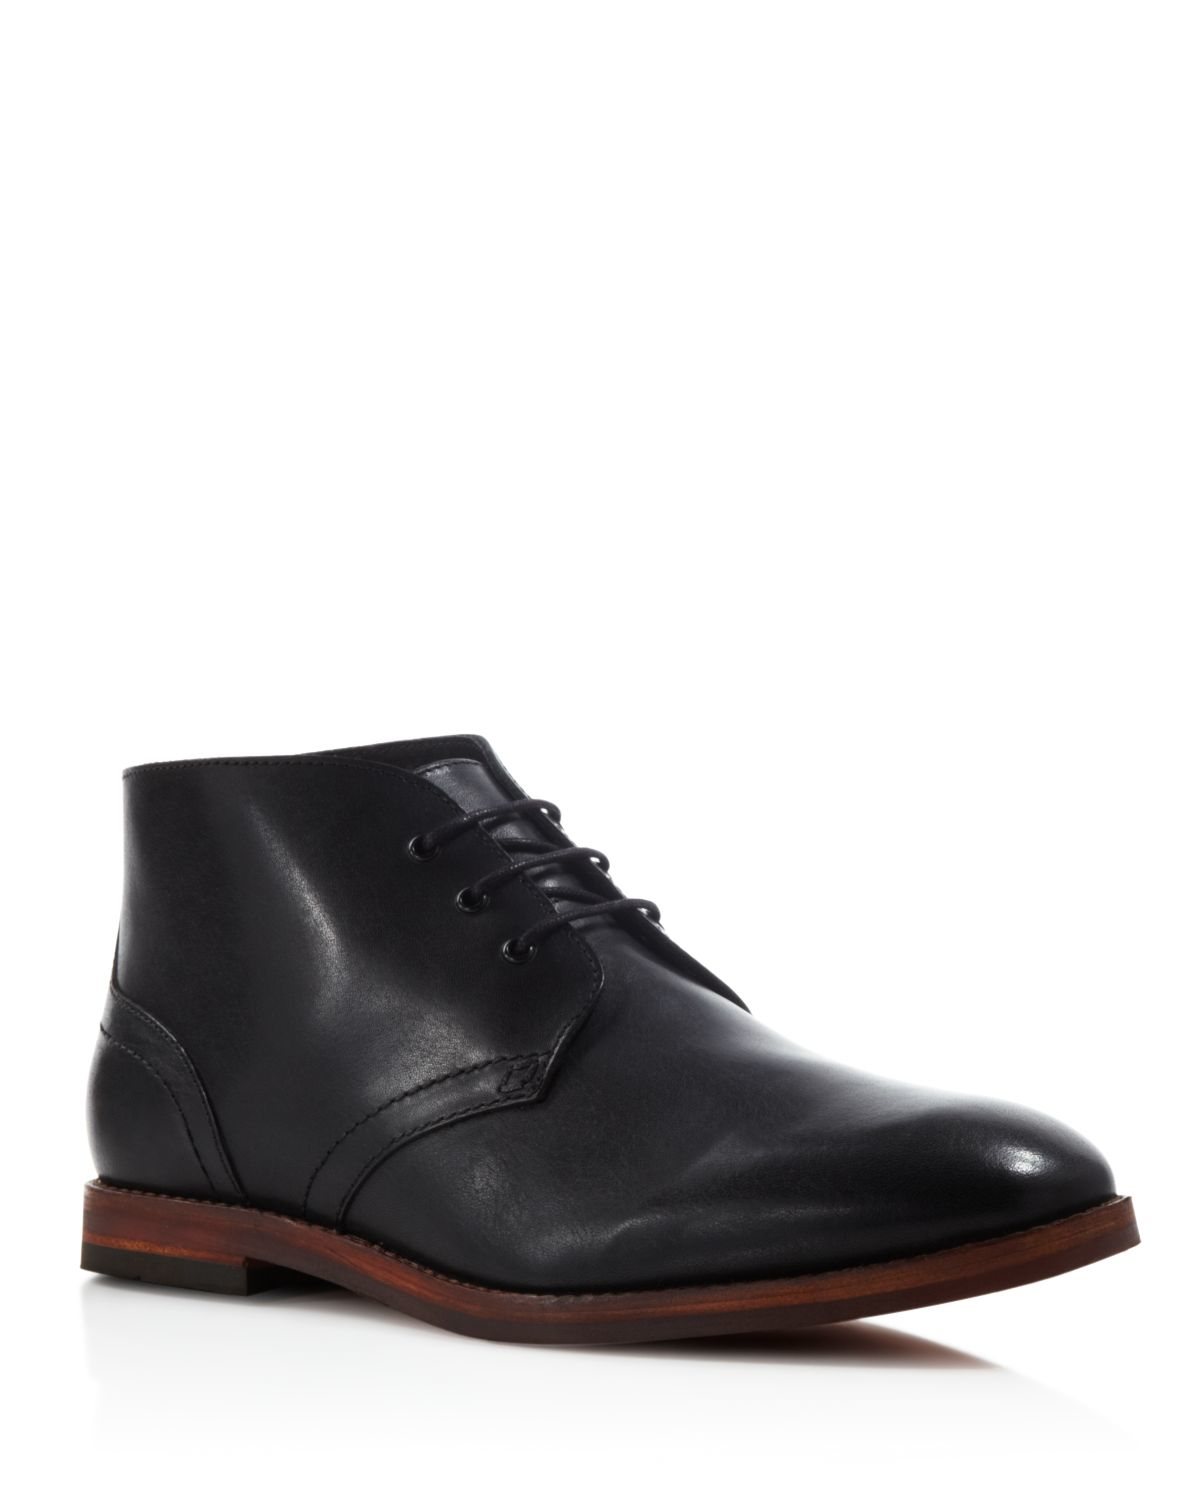 h by hudson houghton chukka boots in black for men lyst. Black Bedroom Furniture Sets. Home Design Ideas